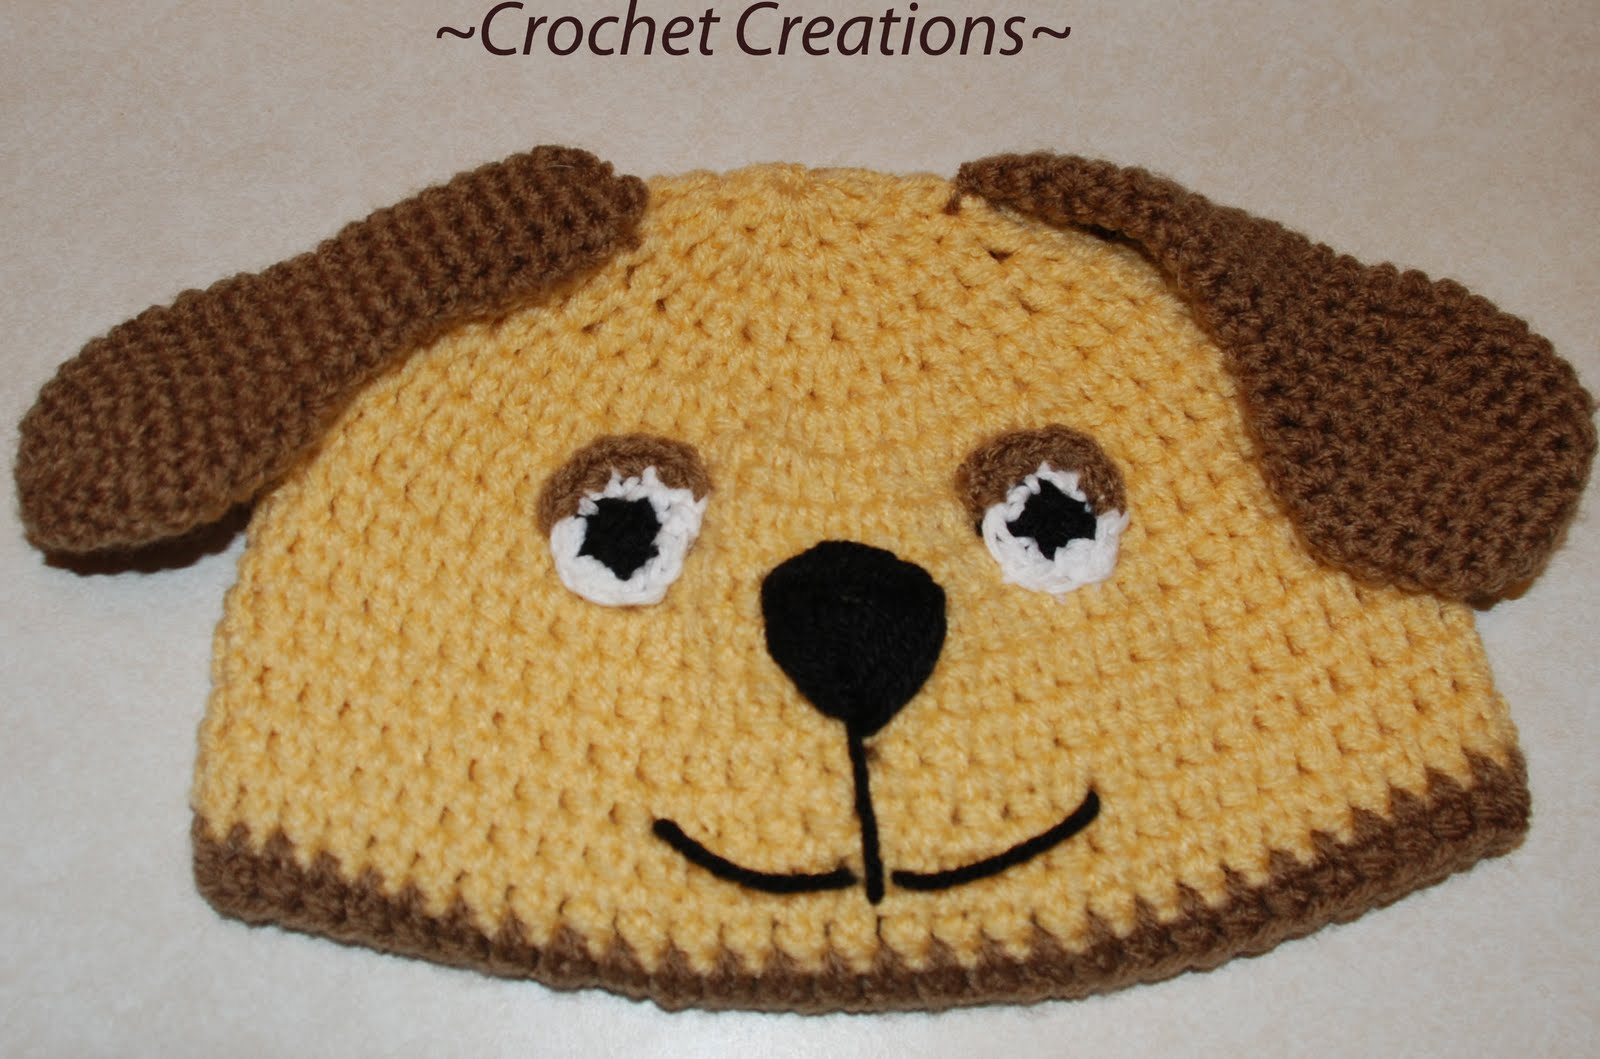 Amys Crochet Creative Creations: Crochet Puppy Dog Hat (All Sizes)